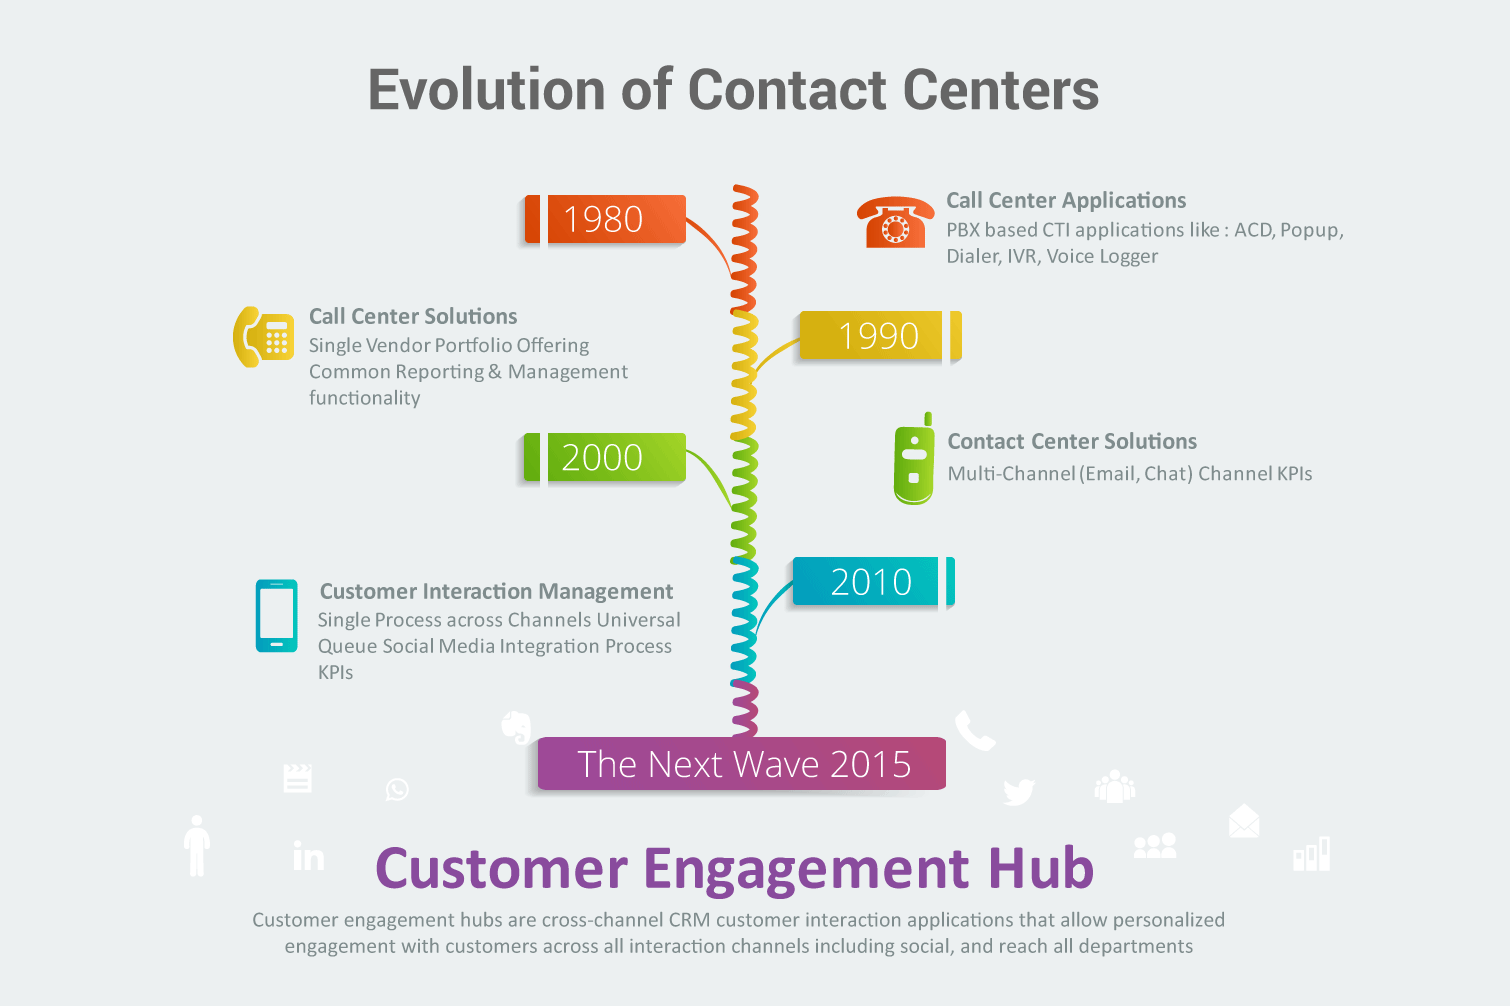 Evolution of Contact Centers